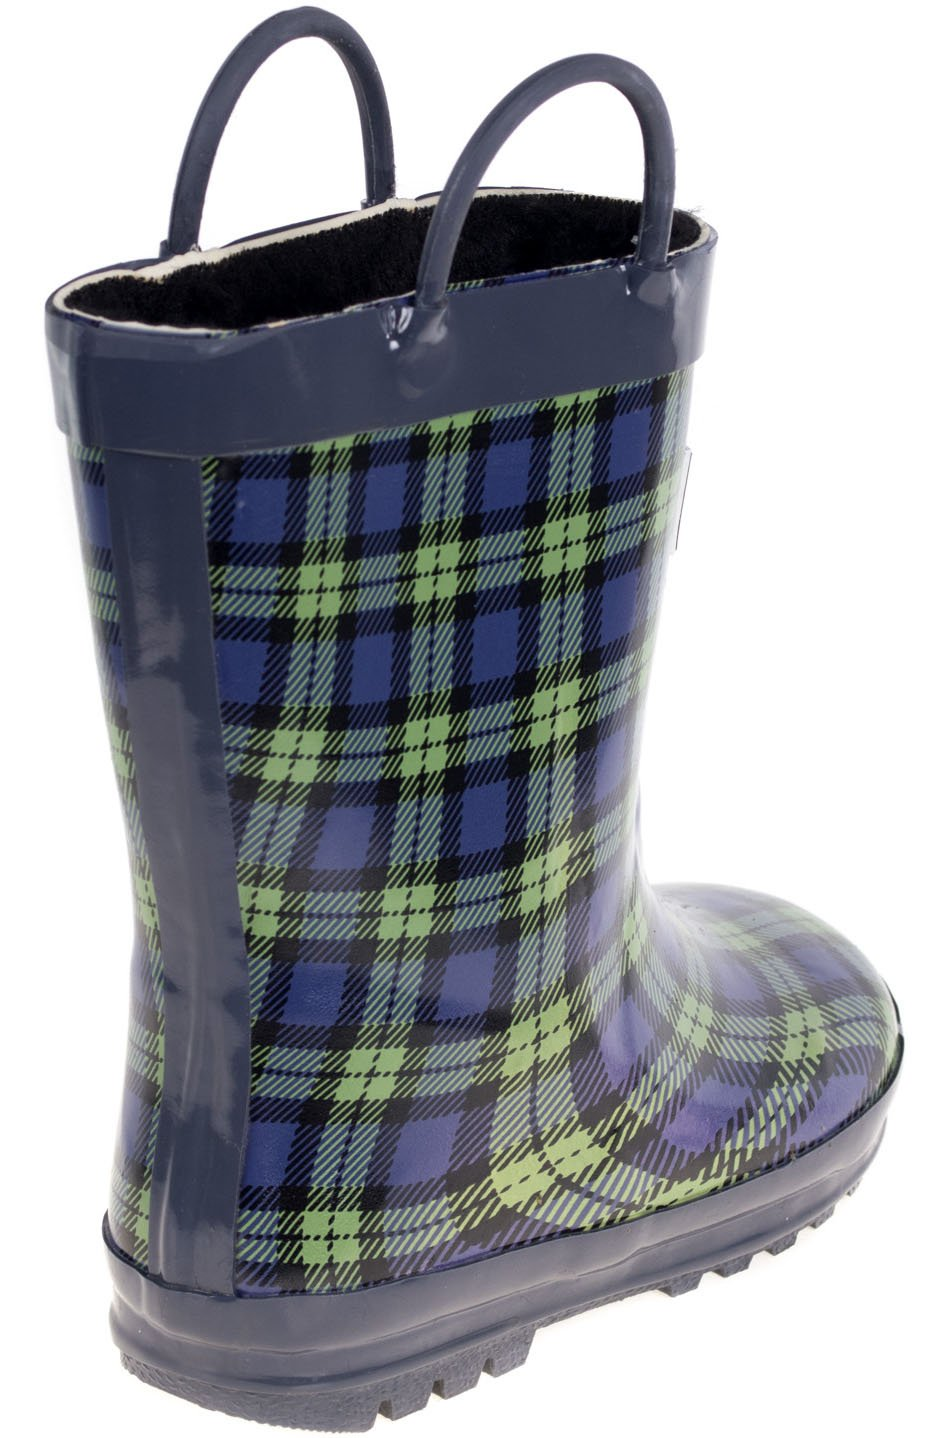 Kids Rain Boots, Faux Fur Lined Rubber Boots with Handles, Blue Green Plaid Size 13 by Forever Young (Image #2)